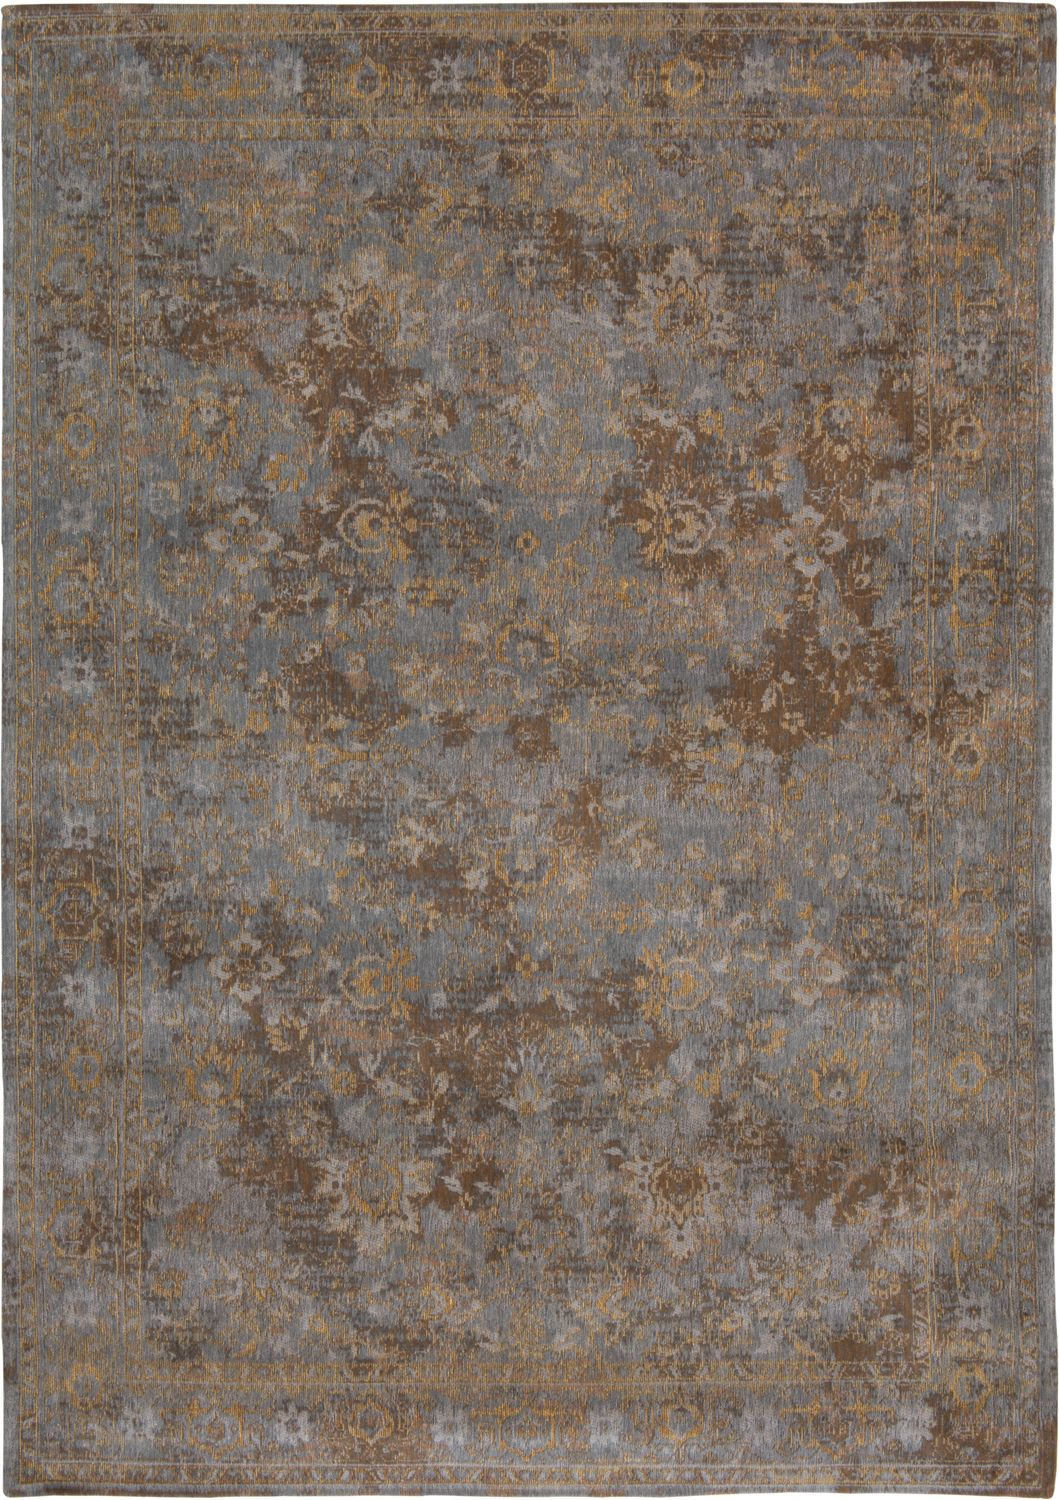 Louis De Poortere Fading World Gray Transitional Rug From The Louis De Poortere Rugs Collection At Modern Area Rugs Beige Rug Patterned Carpet Modern Area Rugs